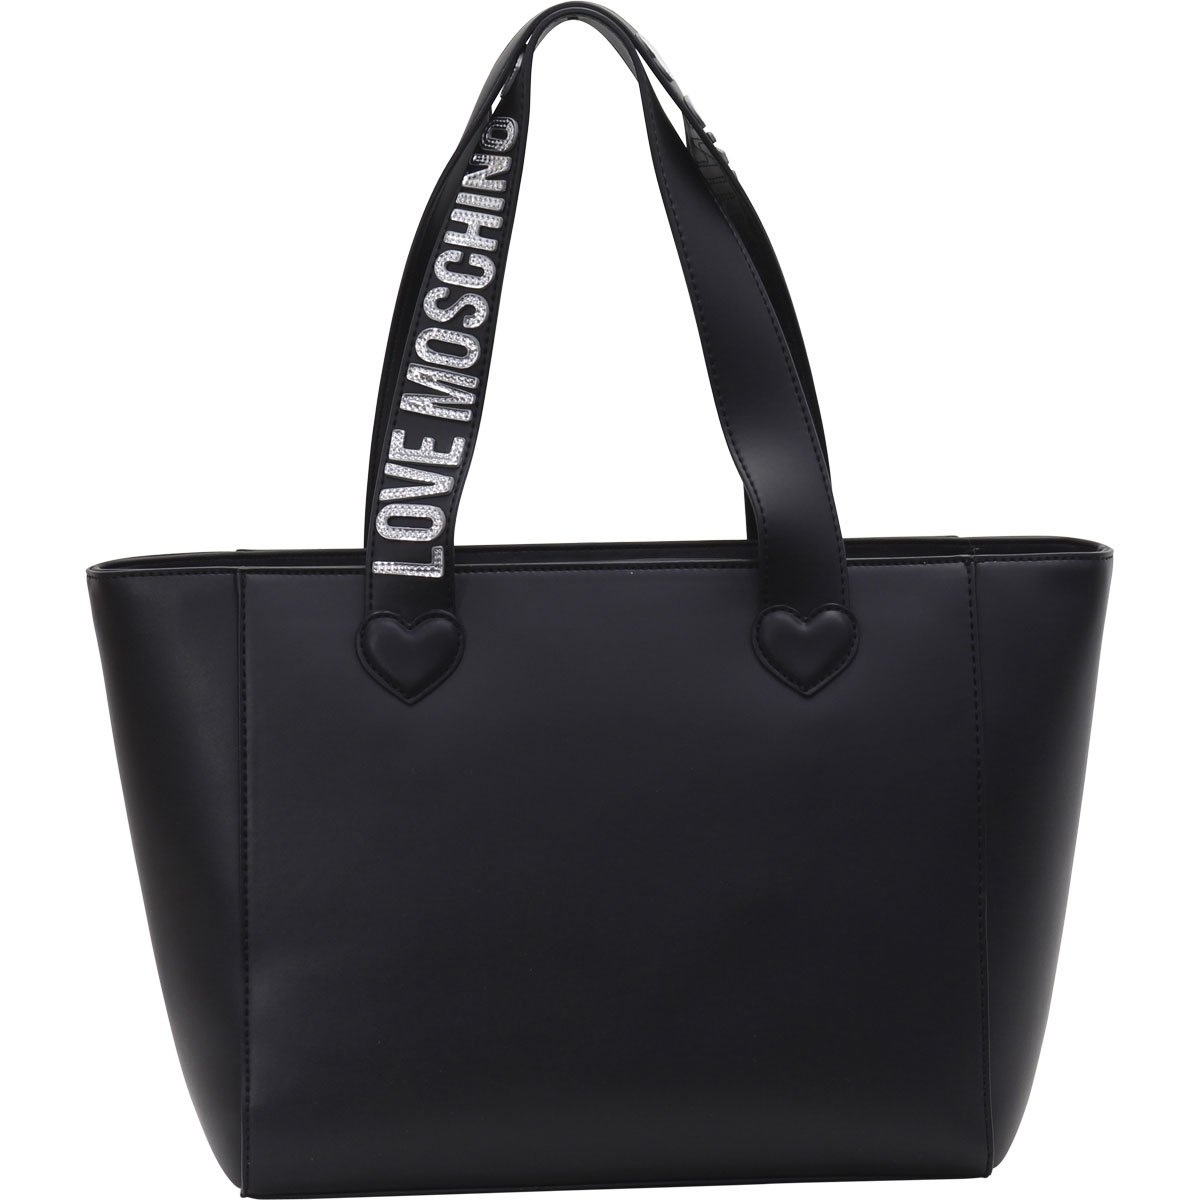 Love Moschino Women's Embroidered Hearts Cluster Tote Handbag by Love Moschino (Image #3)